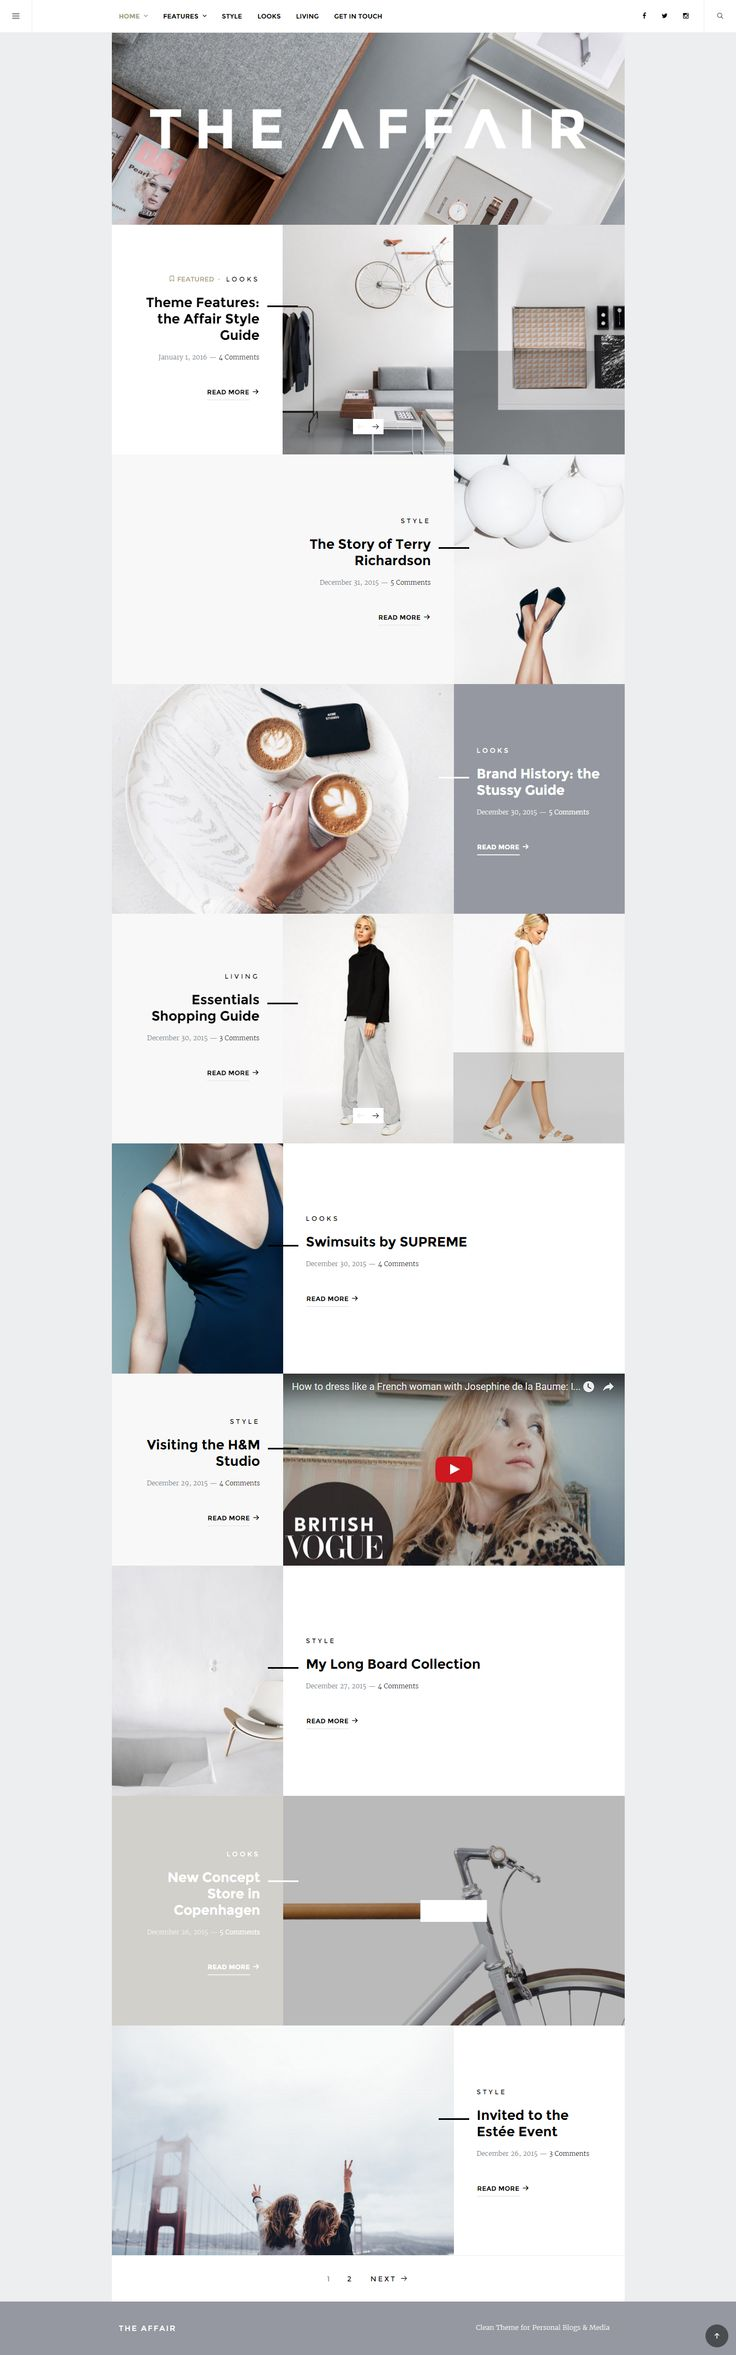 The Affair - Creative Theme for Personal Blogs and Magazines  The Affair is a clean responsive Wordpress Theme for personal blogging and magazines.  Enjoy the minimalist look, well-thought typography and various post format options, including slideshows, galleries, featured text and images.